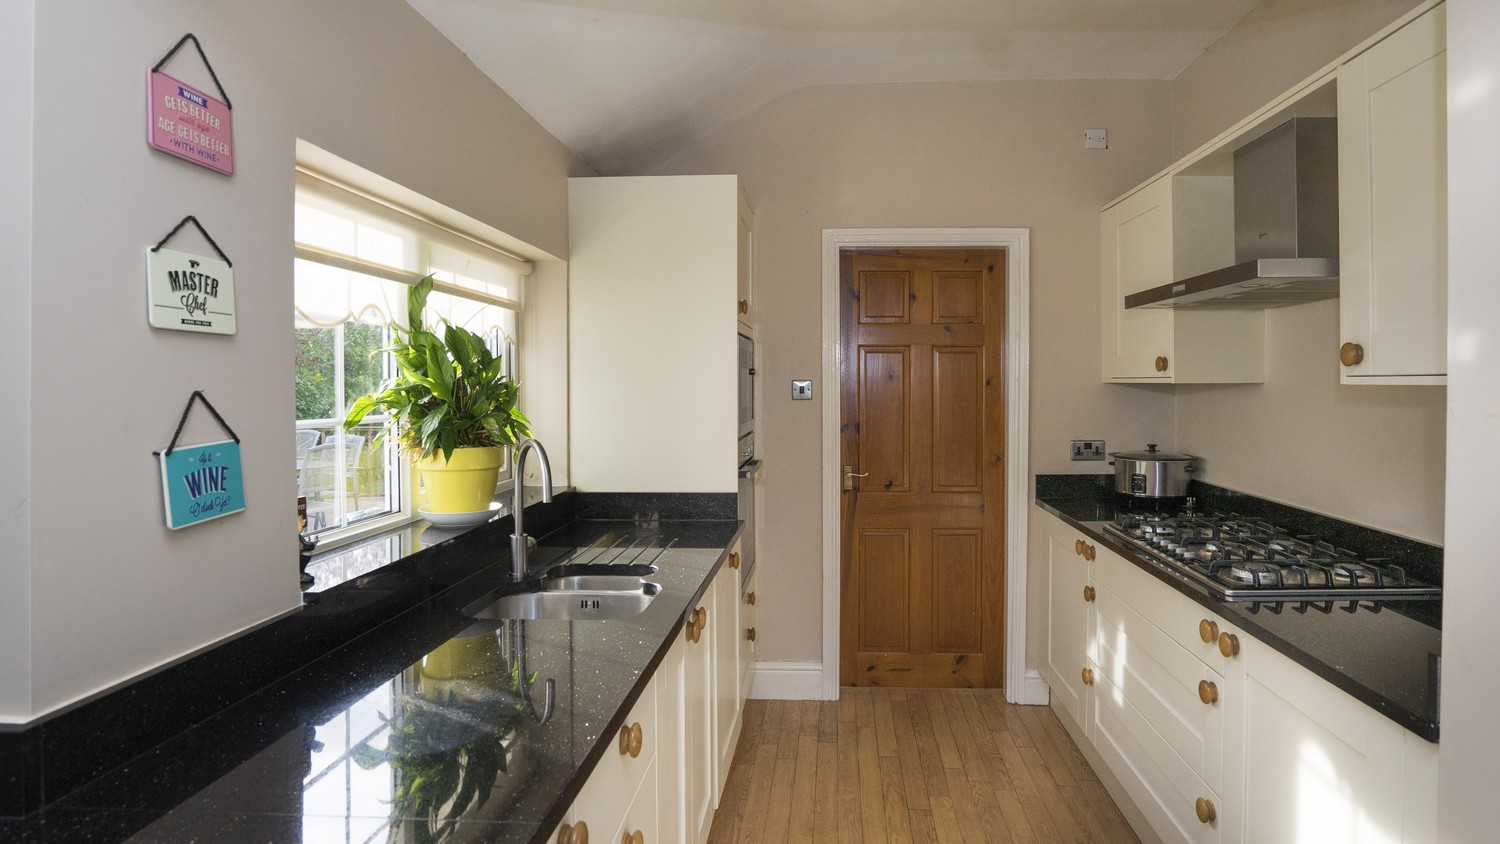 In the corner of the kitchen sits a gallery area that has created the perfect space for cooking with the sink, oven and hob all in close proximity.